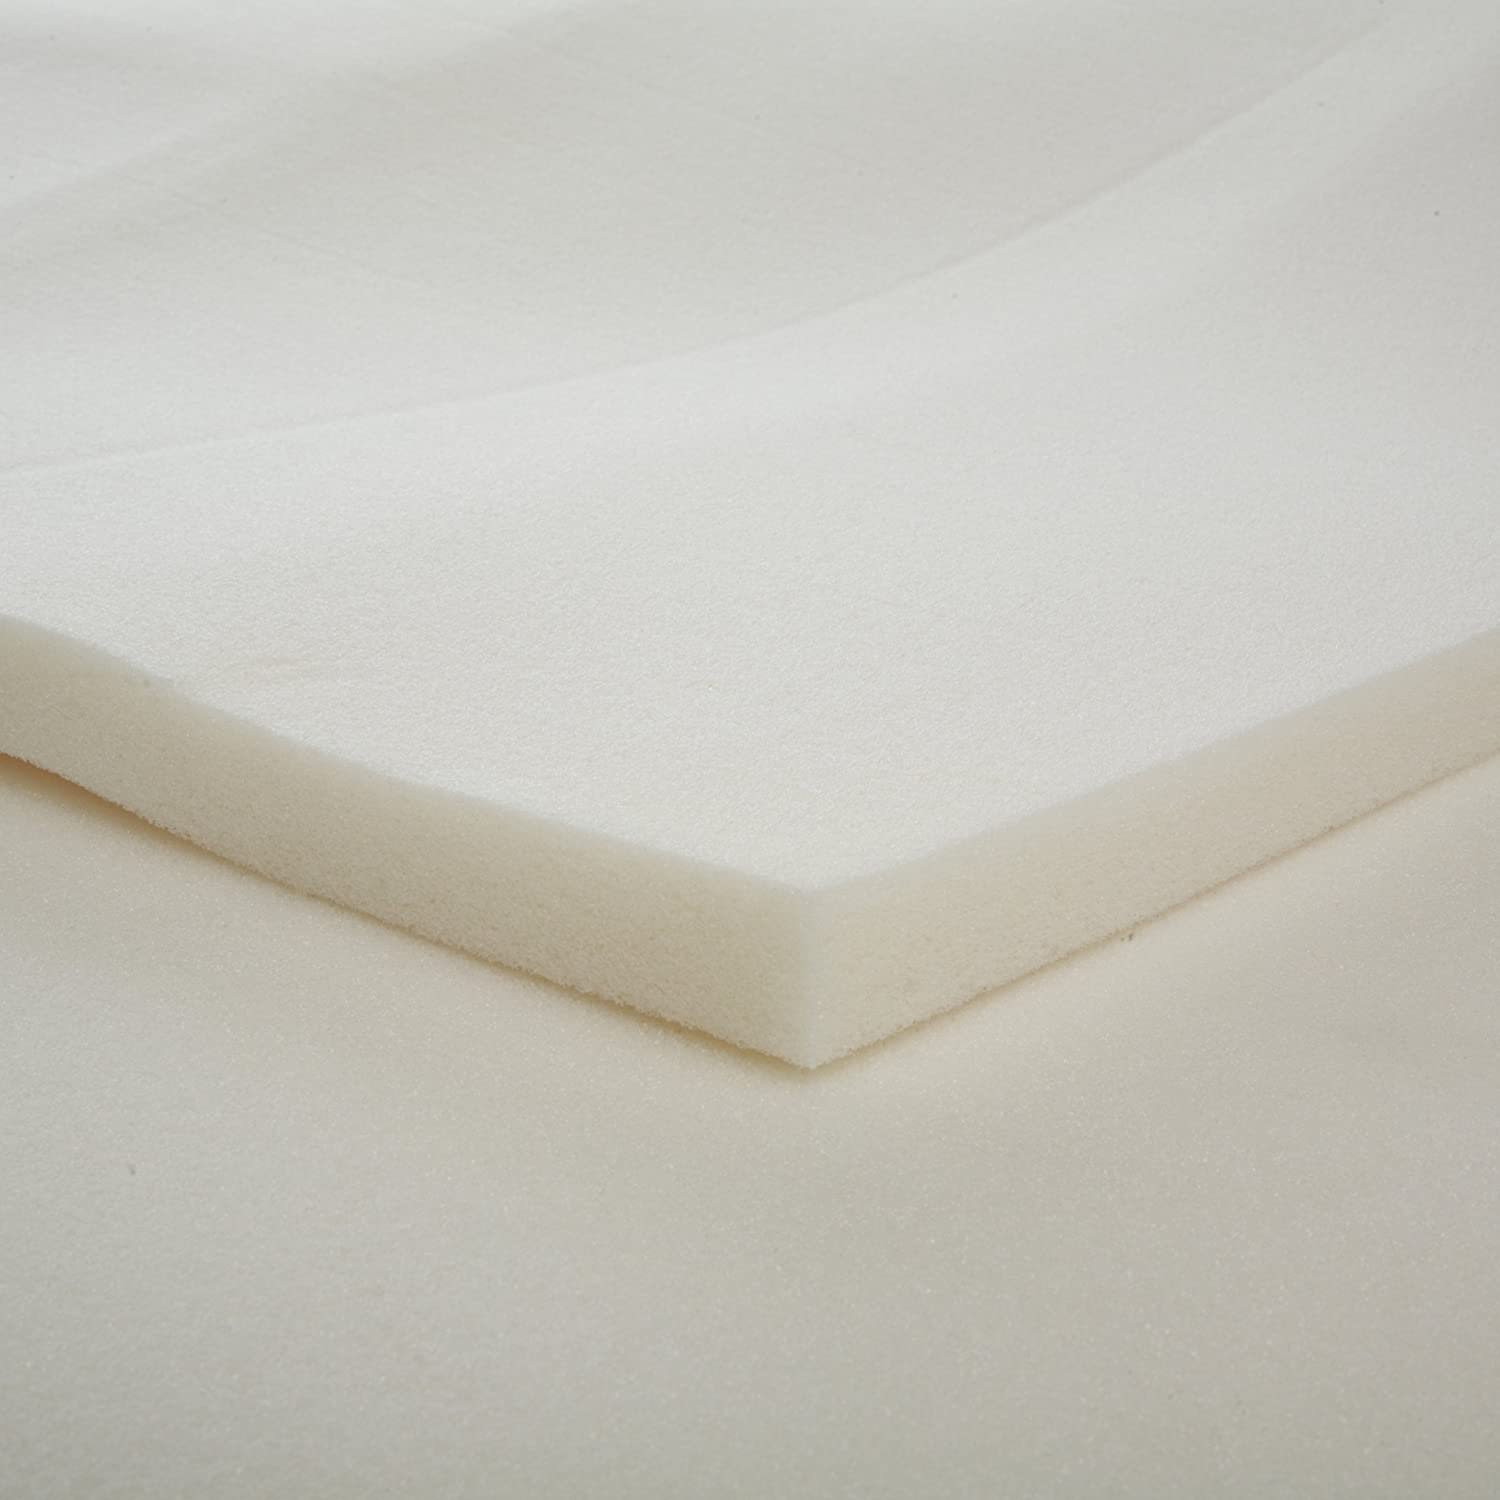 Carpenter memory foam full mattress topper new free shipping Top rated memory foam mattress